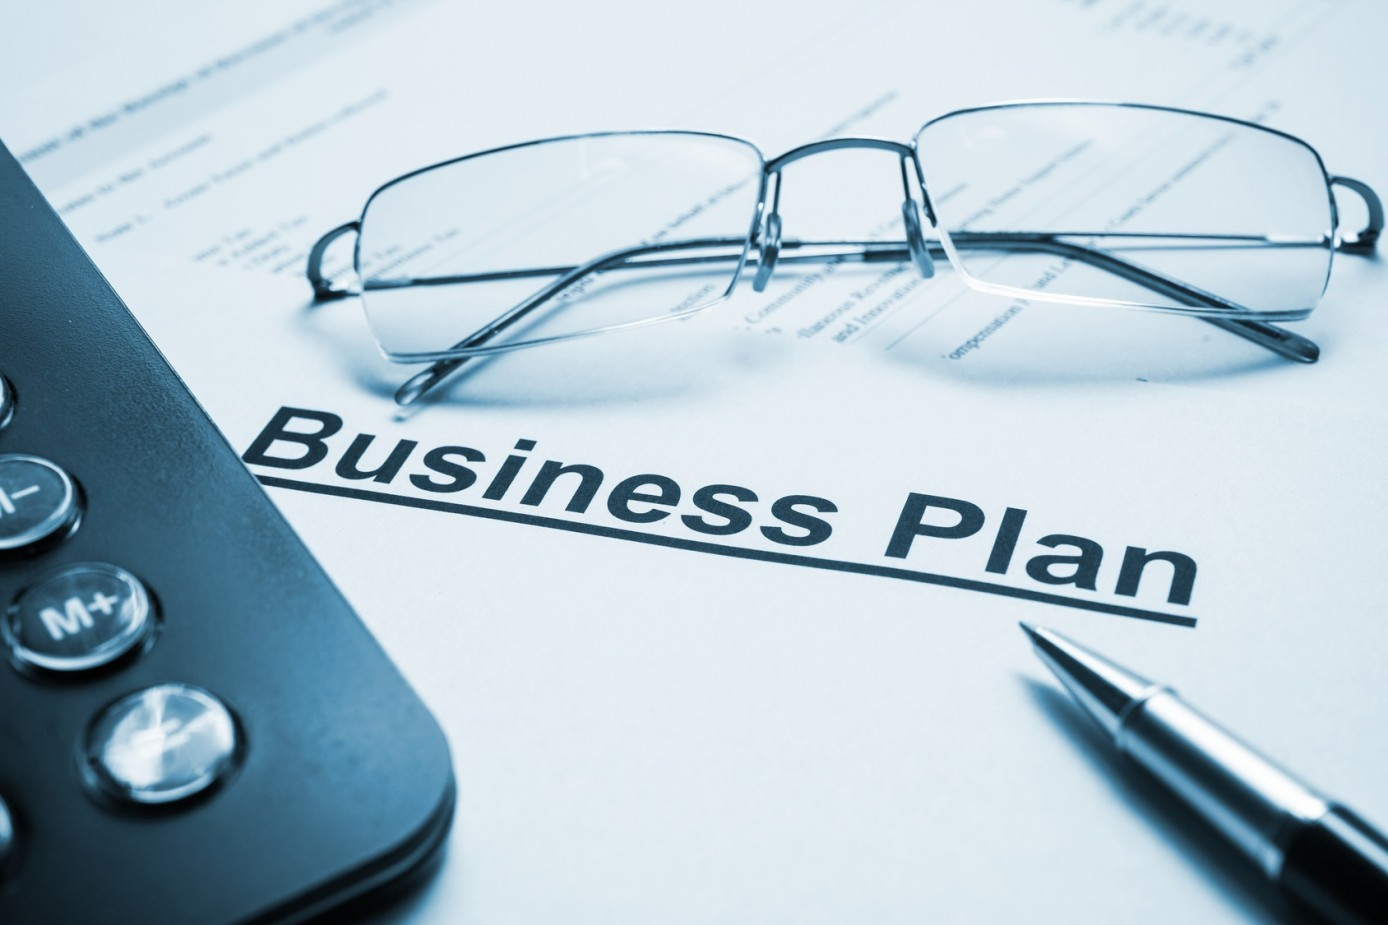 busines plan Getting started if you've never written a business plan before write your business plan with the #1 online business planning tool start your plan templates.